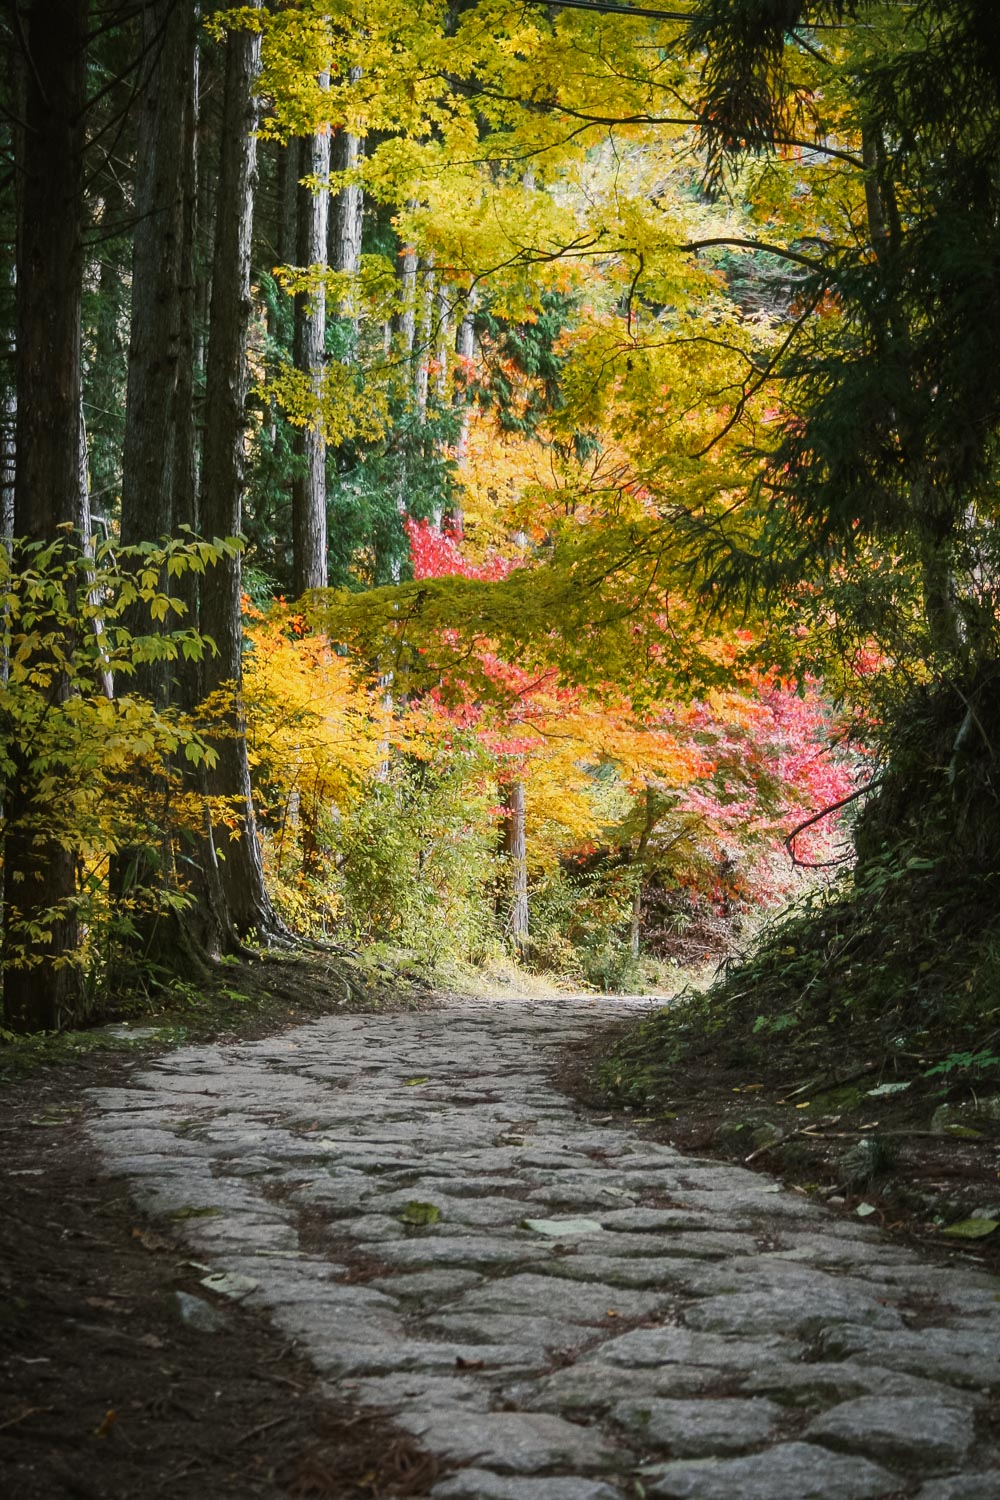 Autumn foliage and cobbled path on the Nakasendo between Magome and Tsumago, Japan